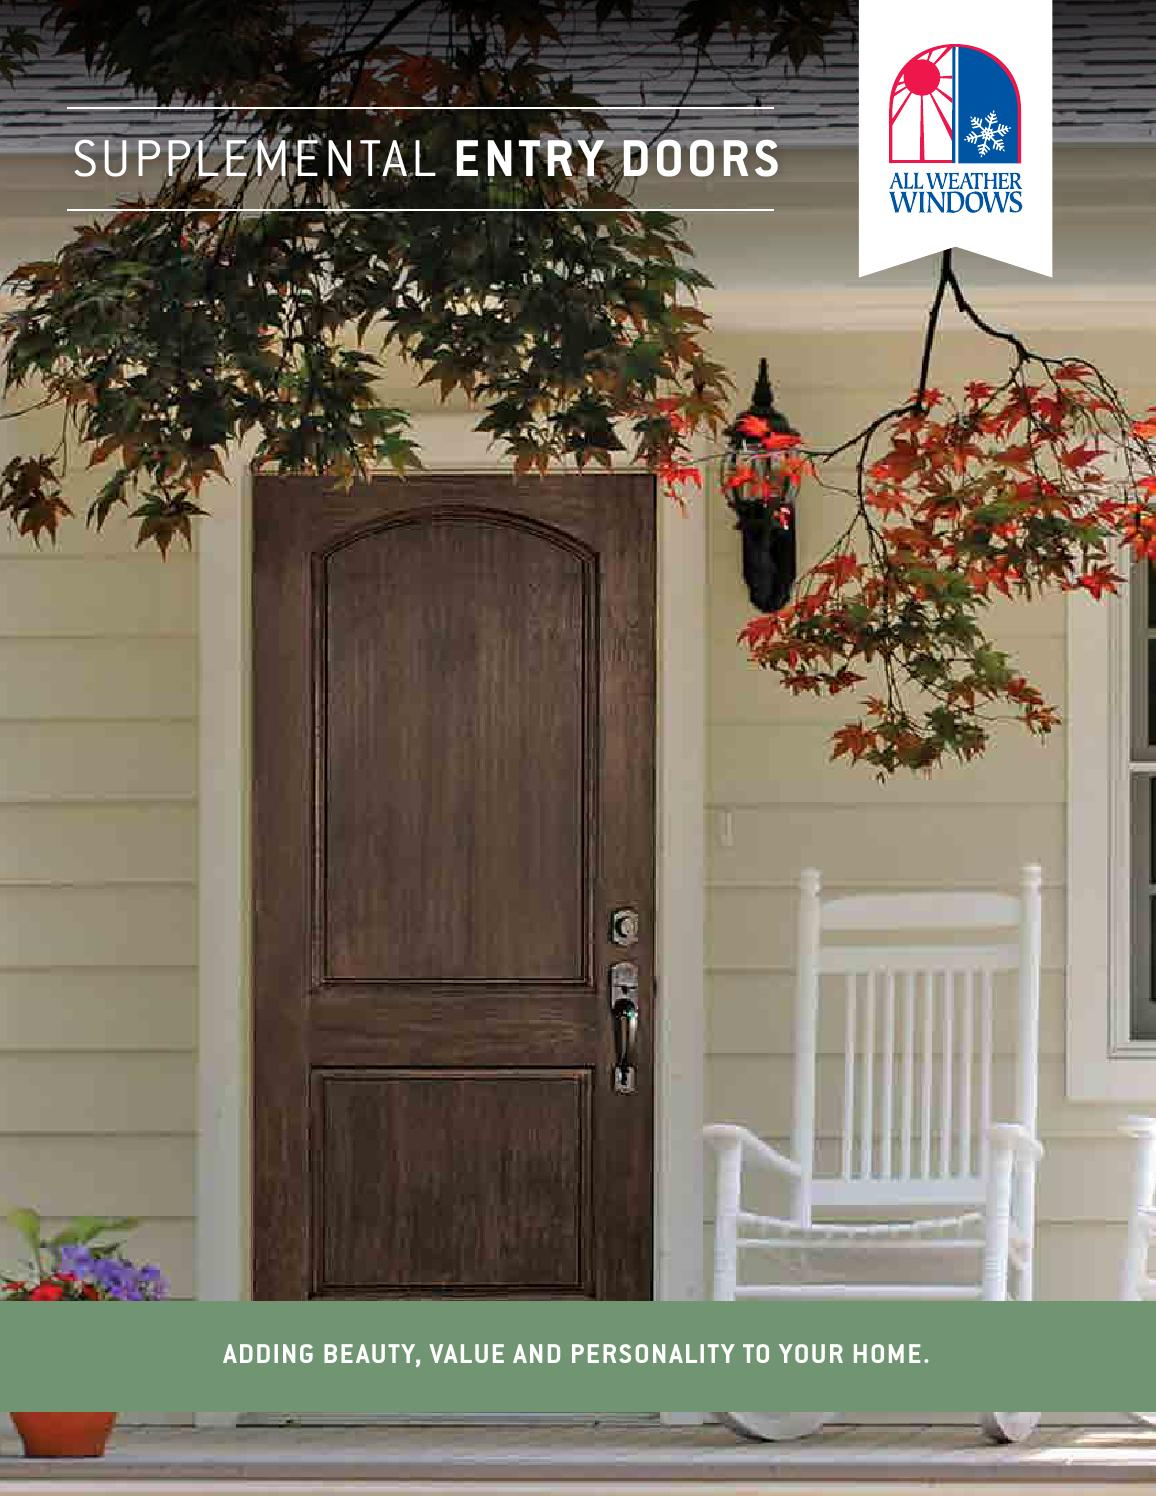 Supplemental Entry Door Catalogue By All Weather Windows Issuu